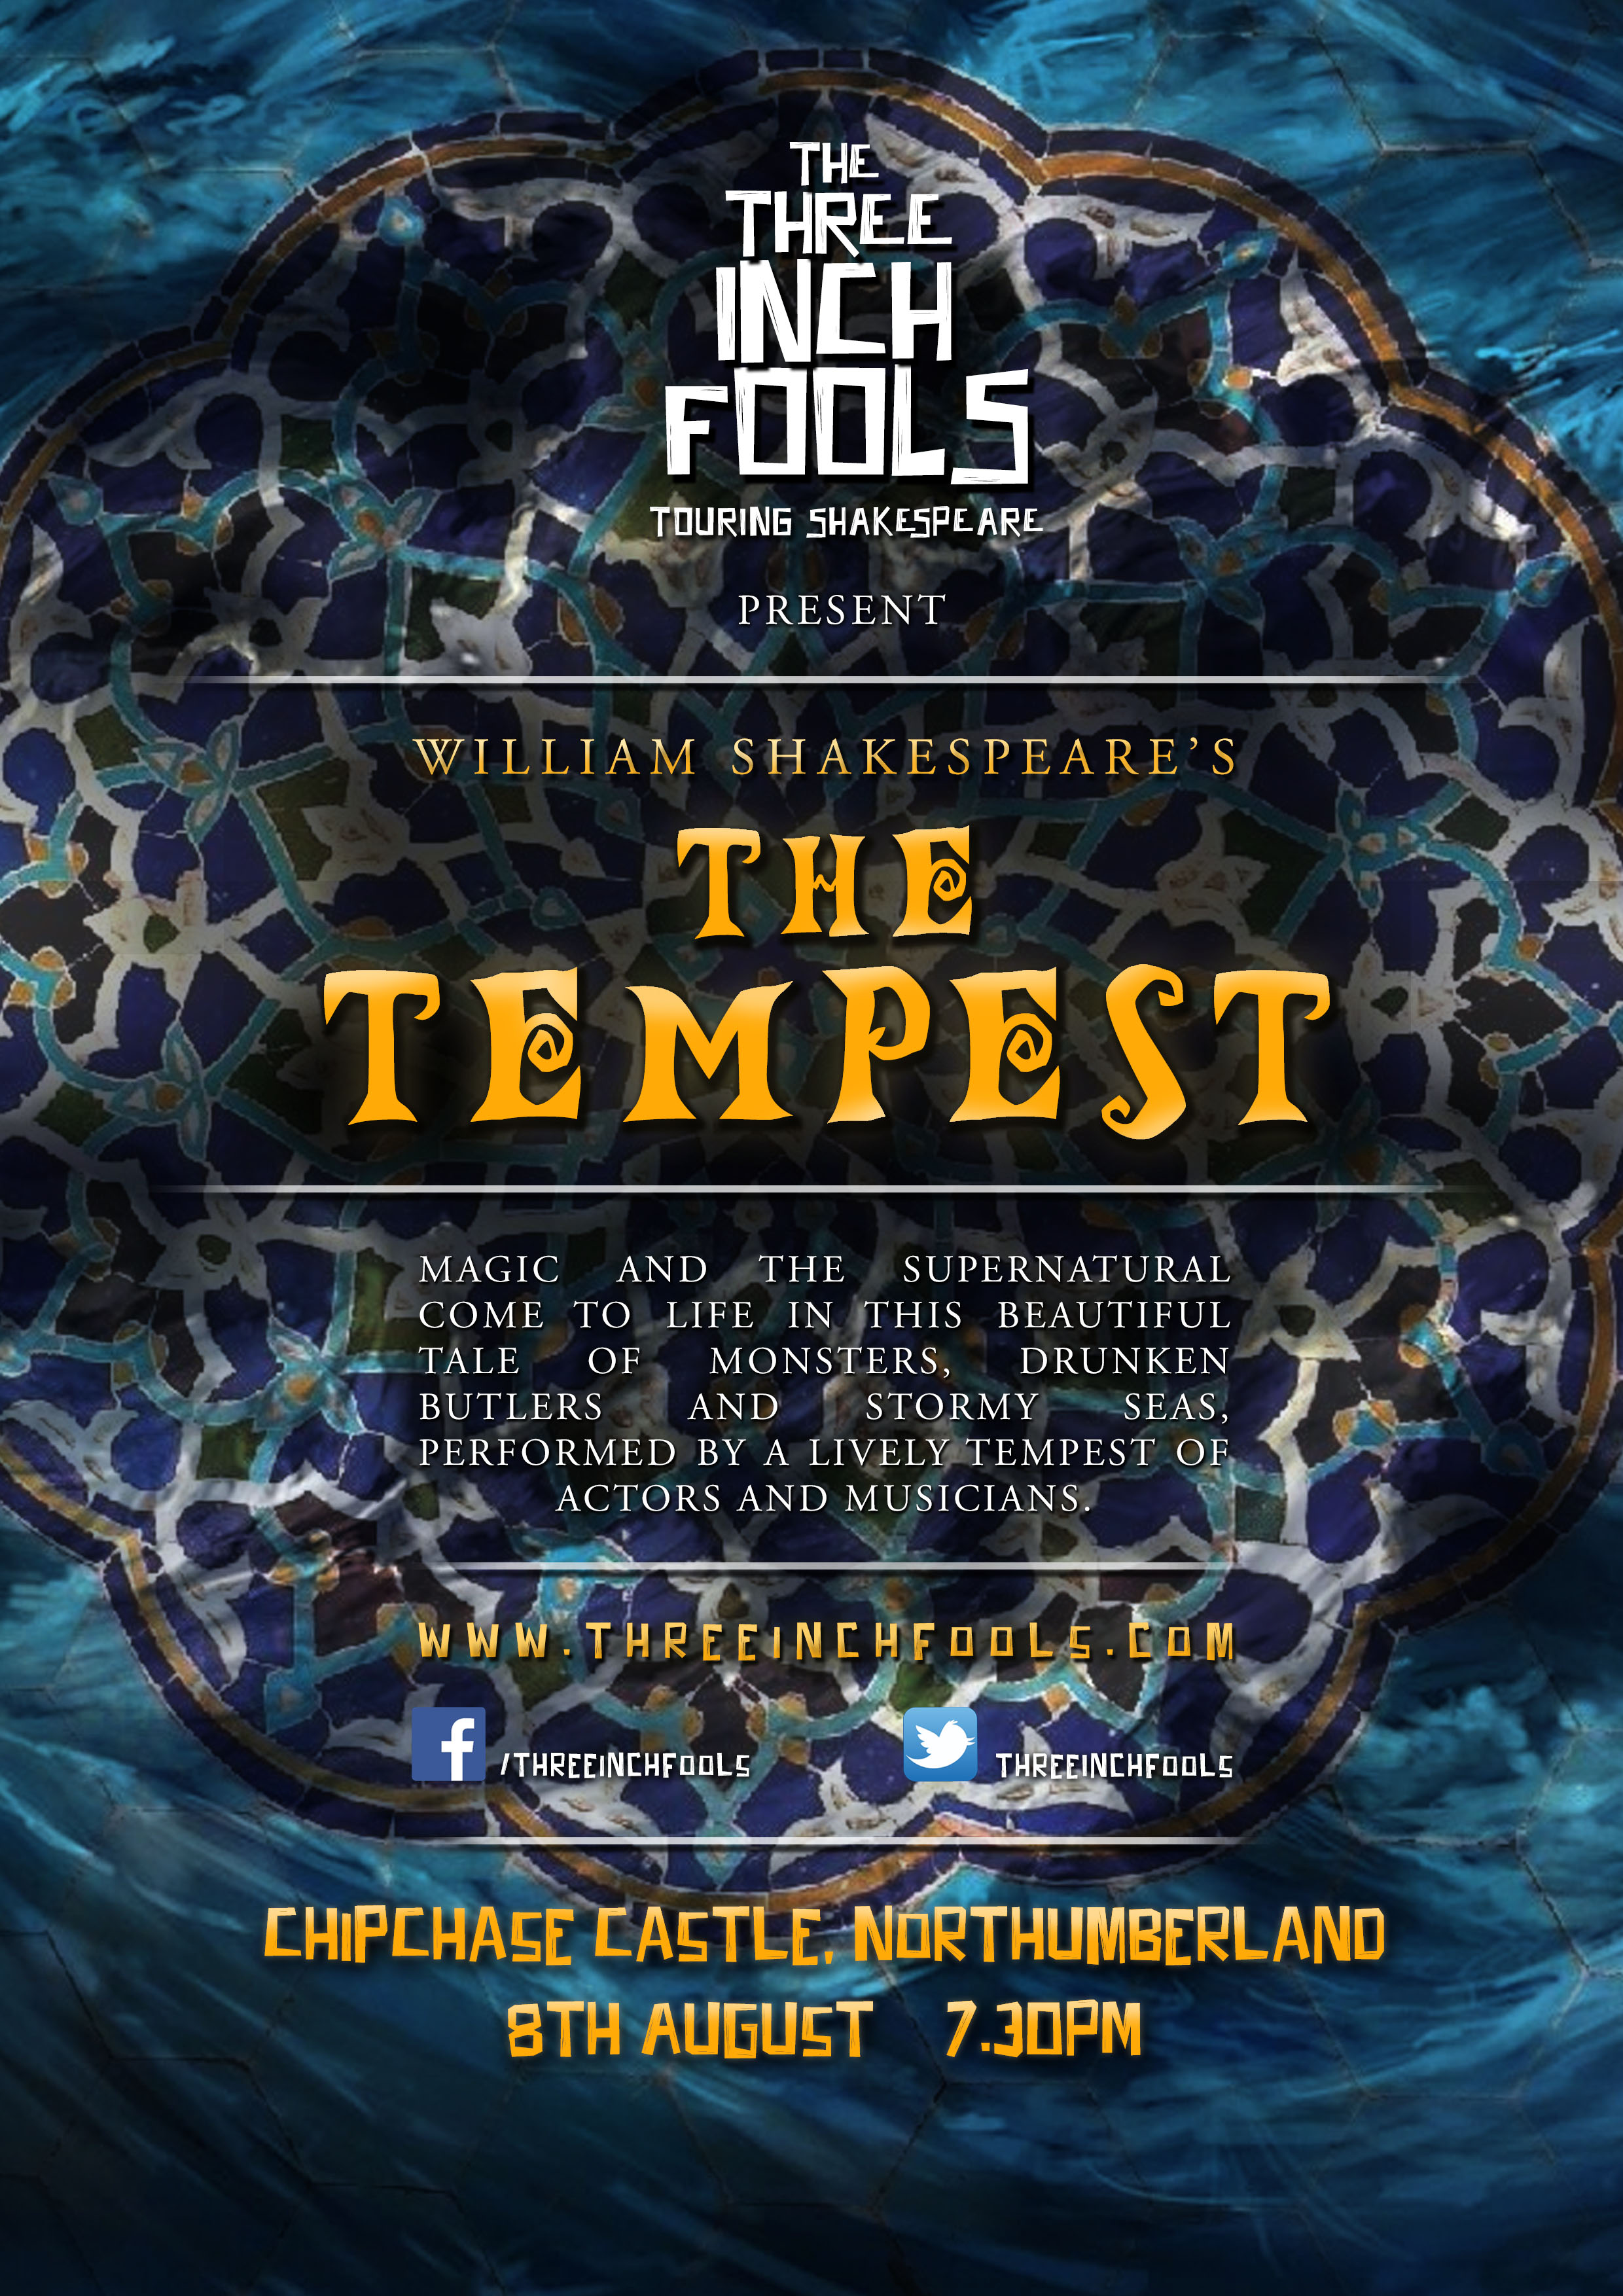 William Shakespear's The Tempest poster